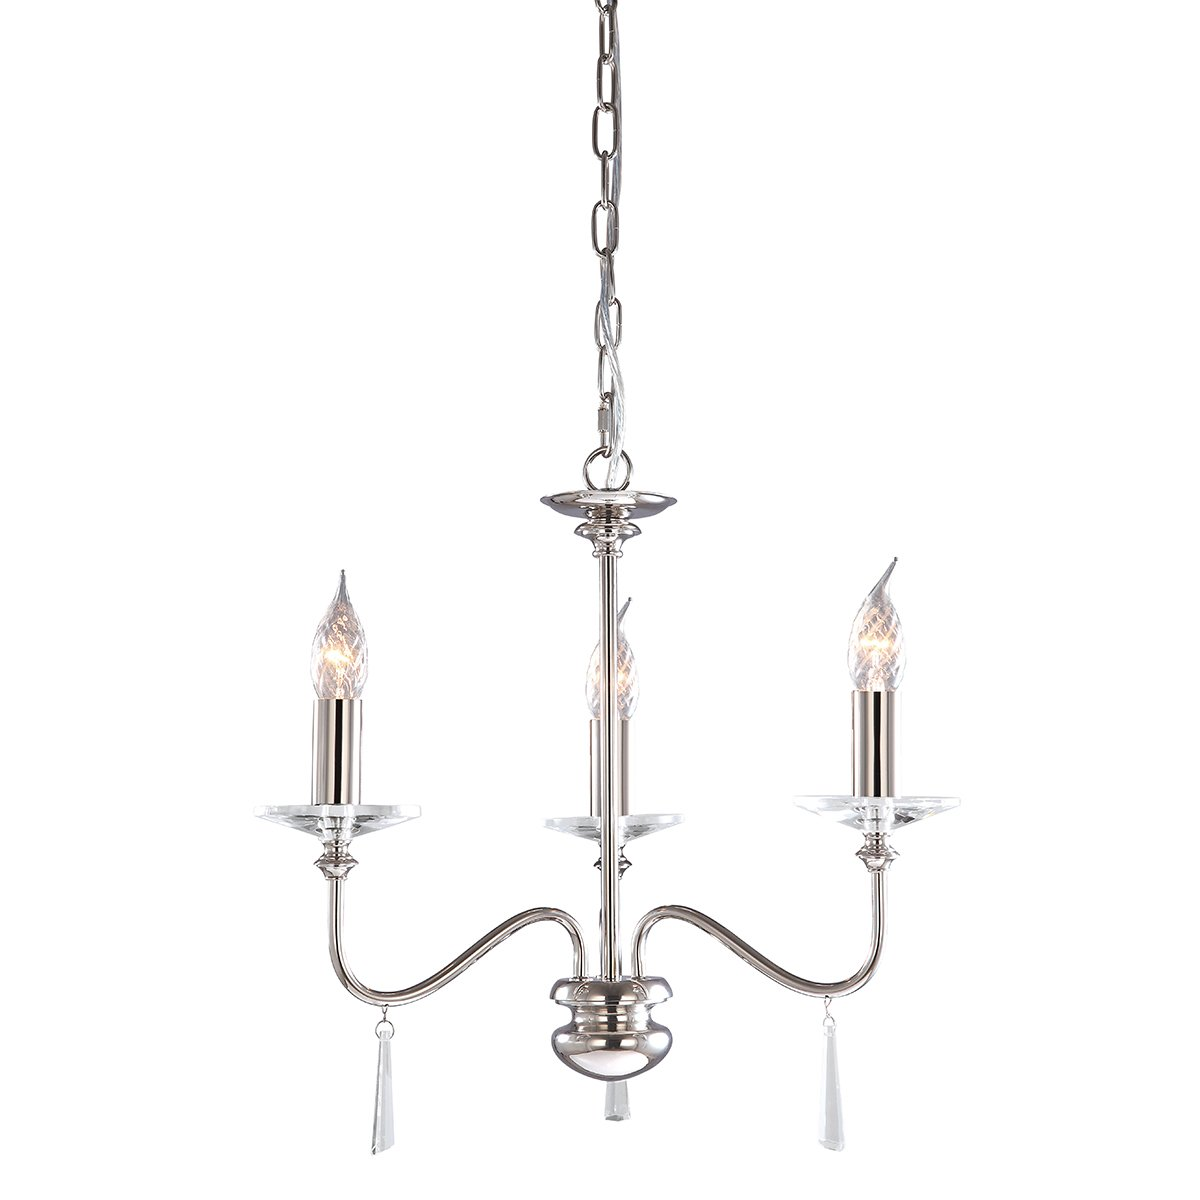 Elstead FP3-PN Finsbury Park 3lt Chandelier, Shades not Included in Polished Nickel